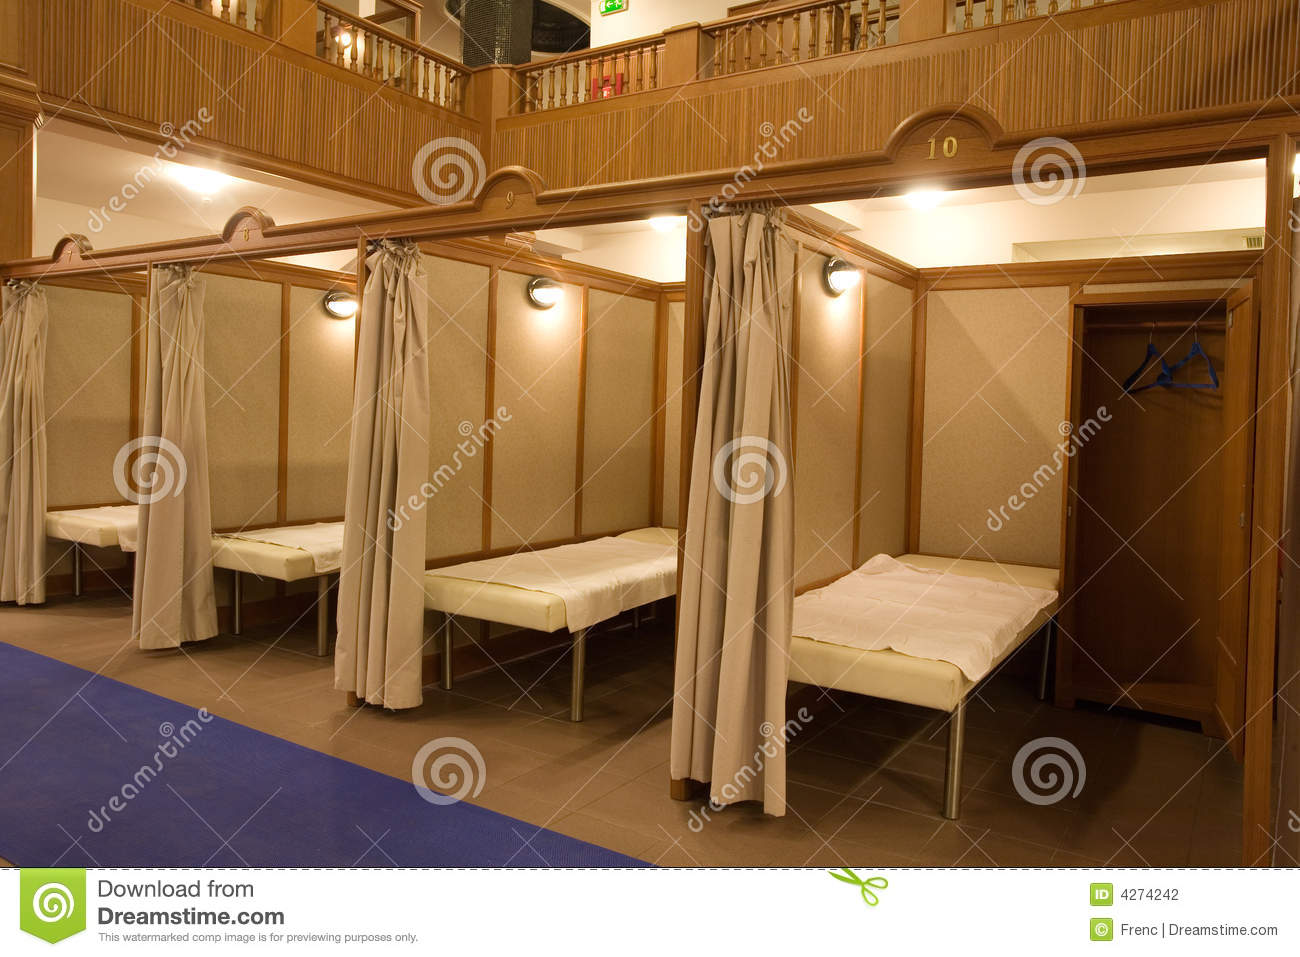 Massage rooms stock photography image 4274242 - Images of room ...